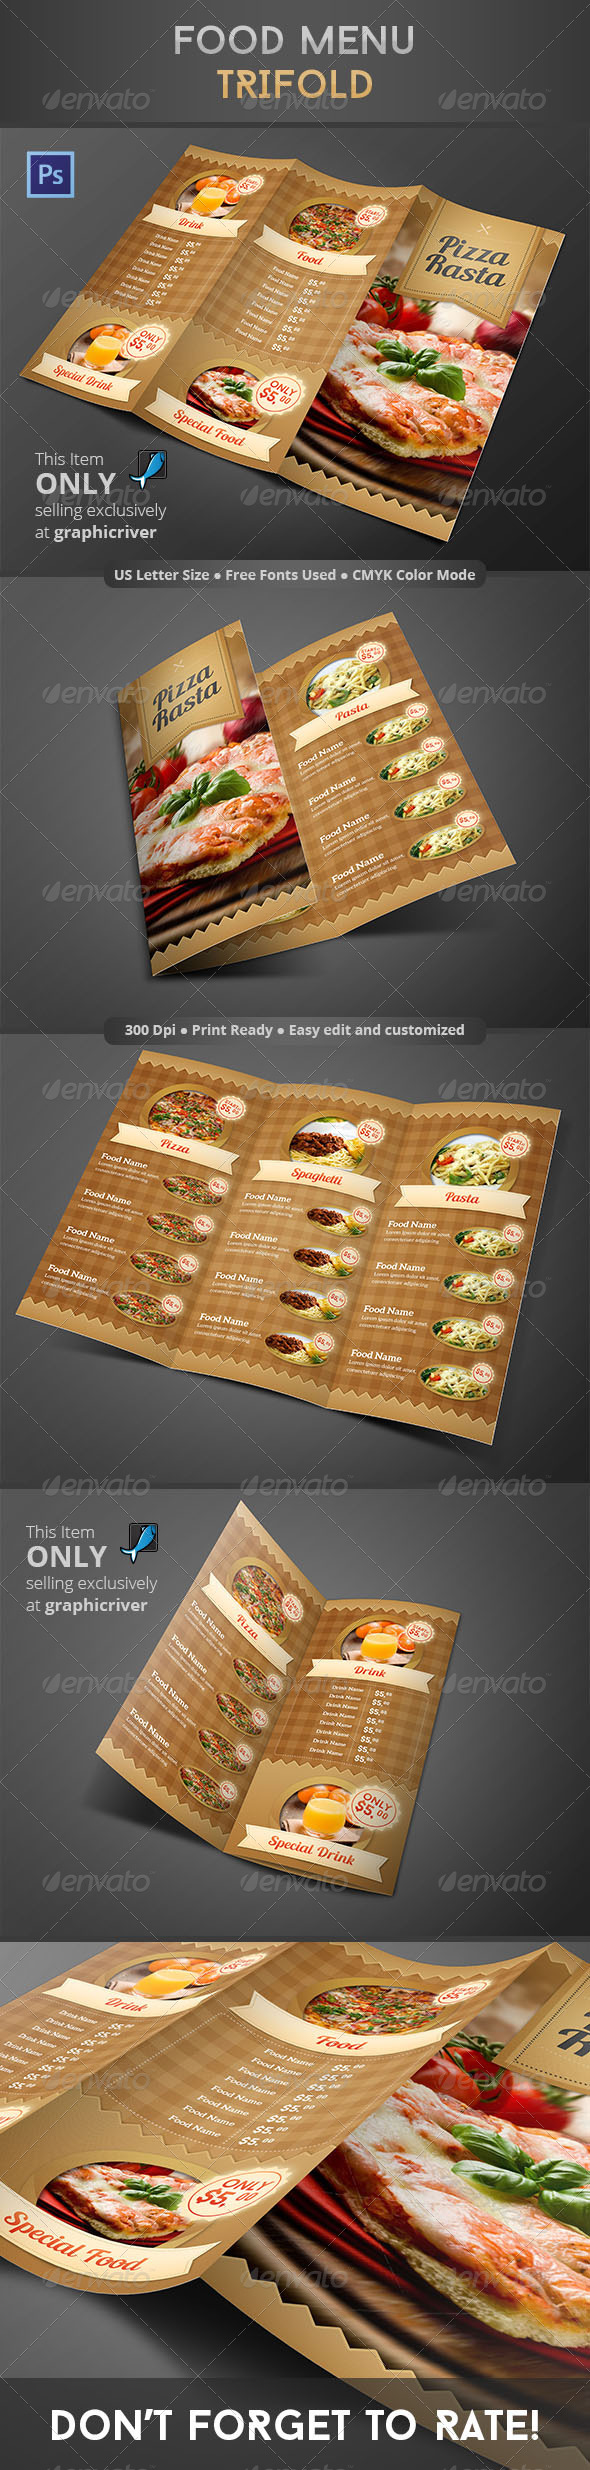 GraphicRiver Food Menu Trifold 8637080